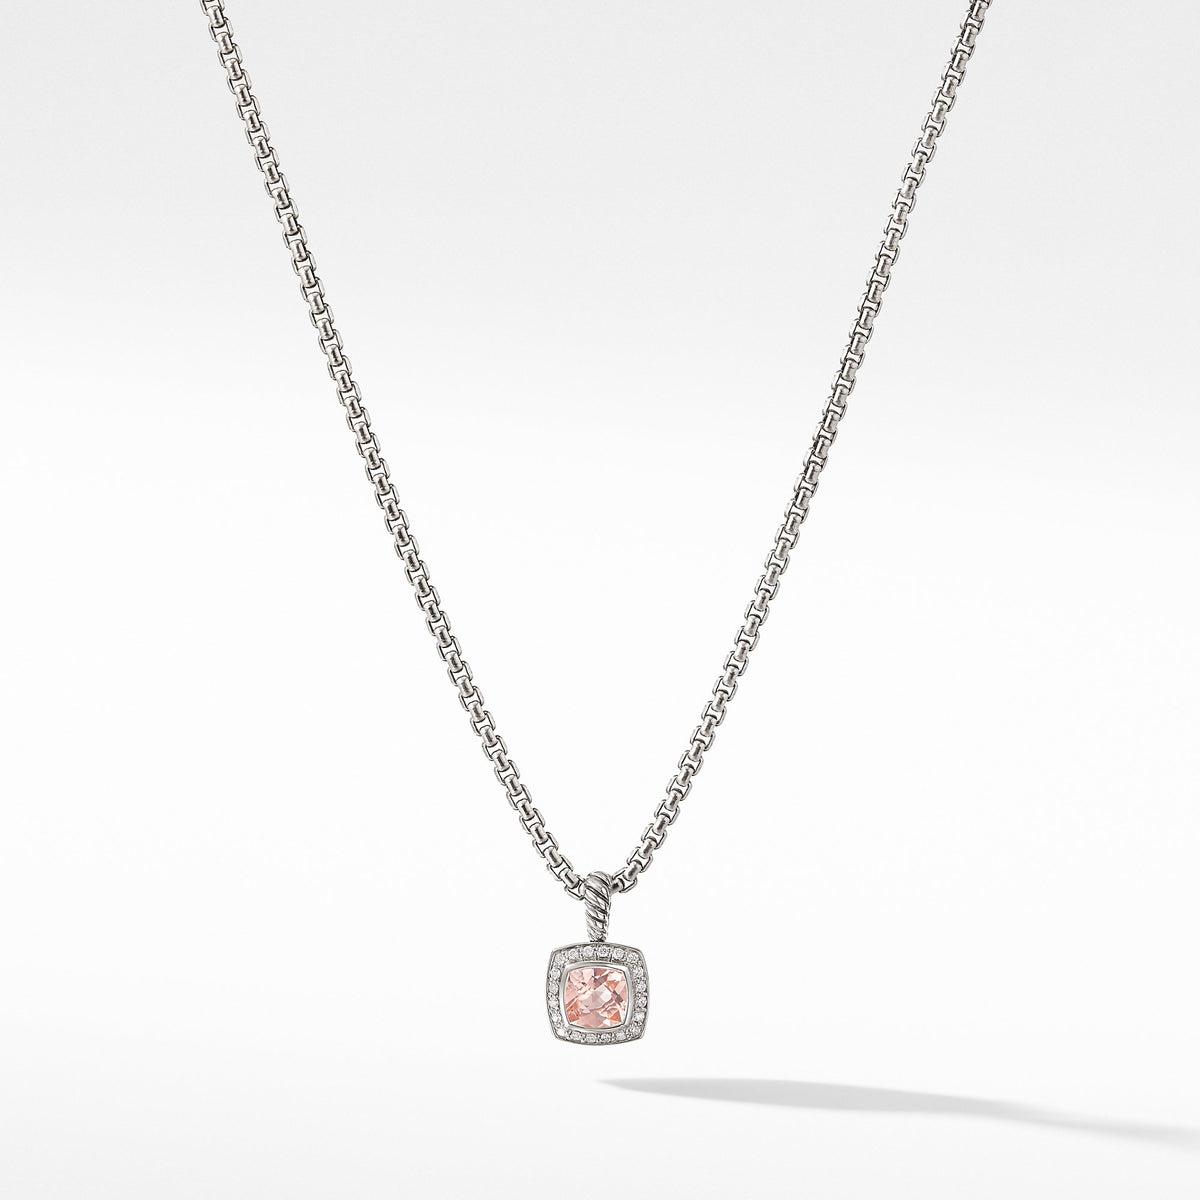 Petite Albion Pendant Necklace with Morganite and Diamonds